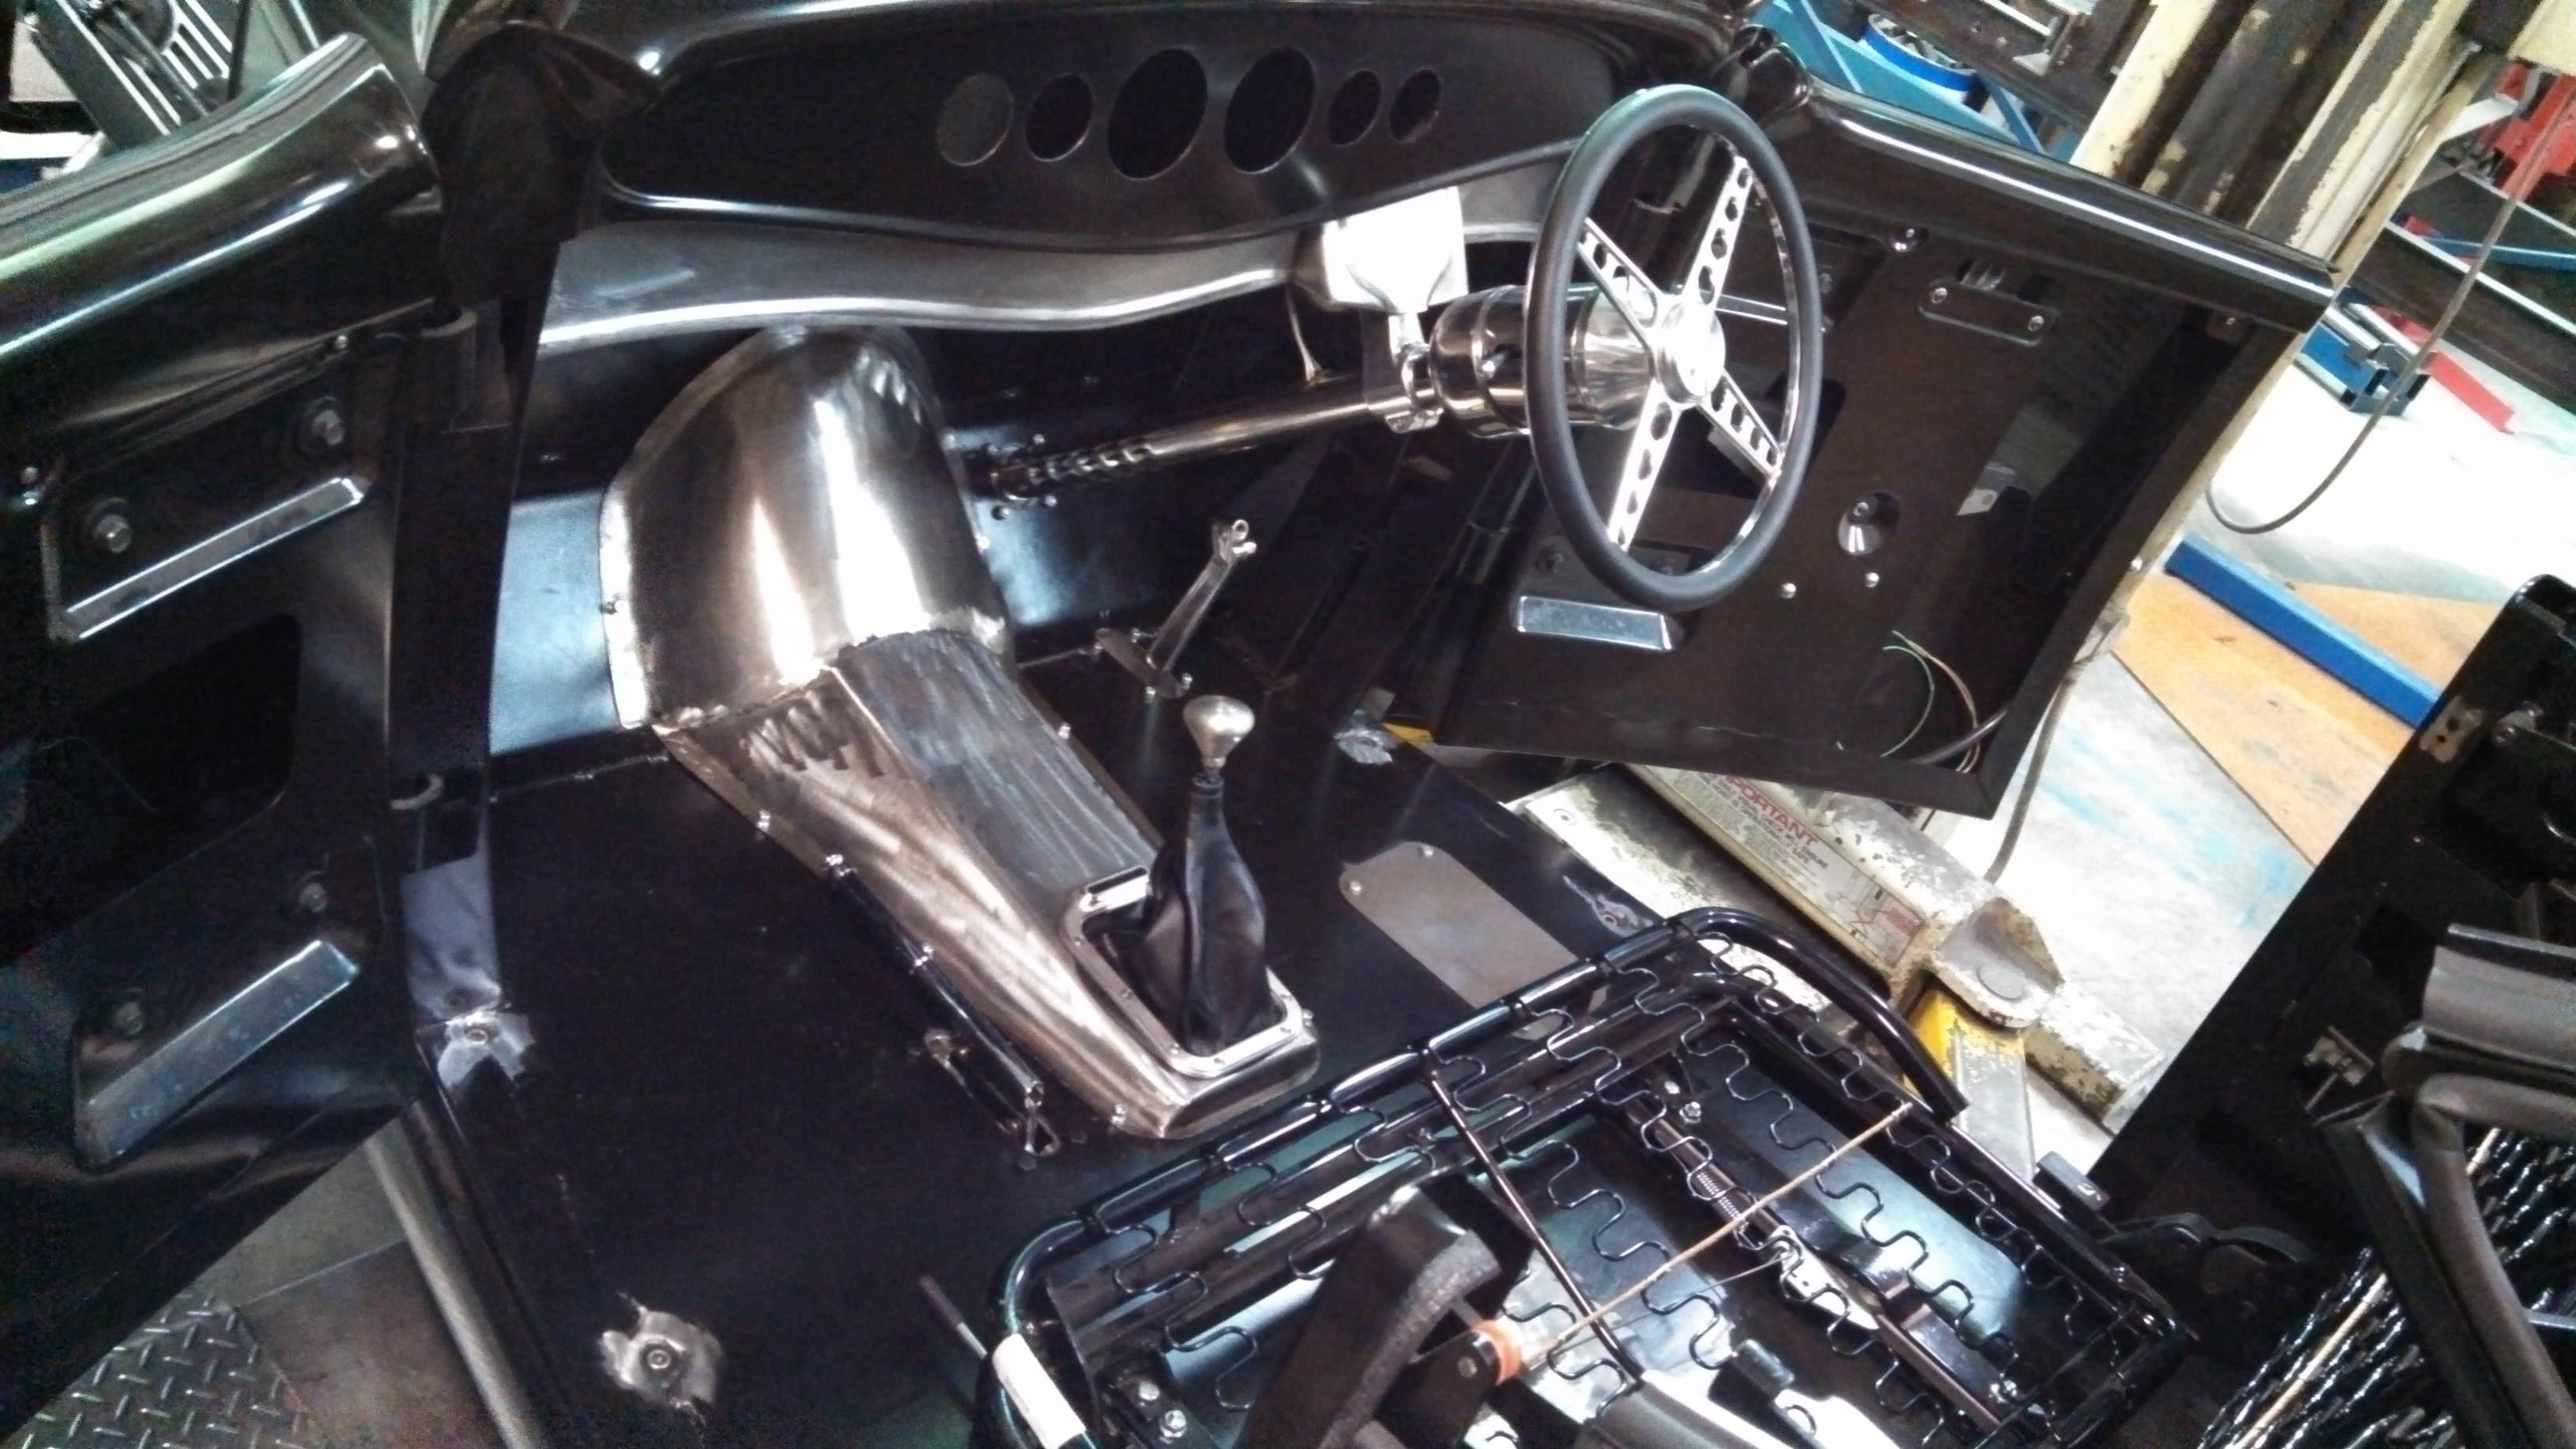 Hot Rod interior fit up, custom dash board panel and trans tunnel